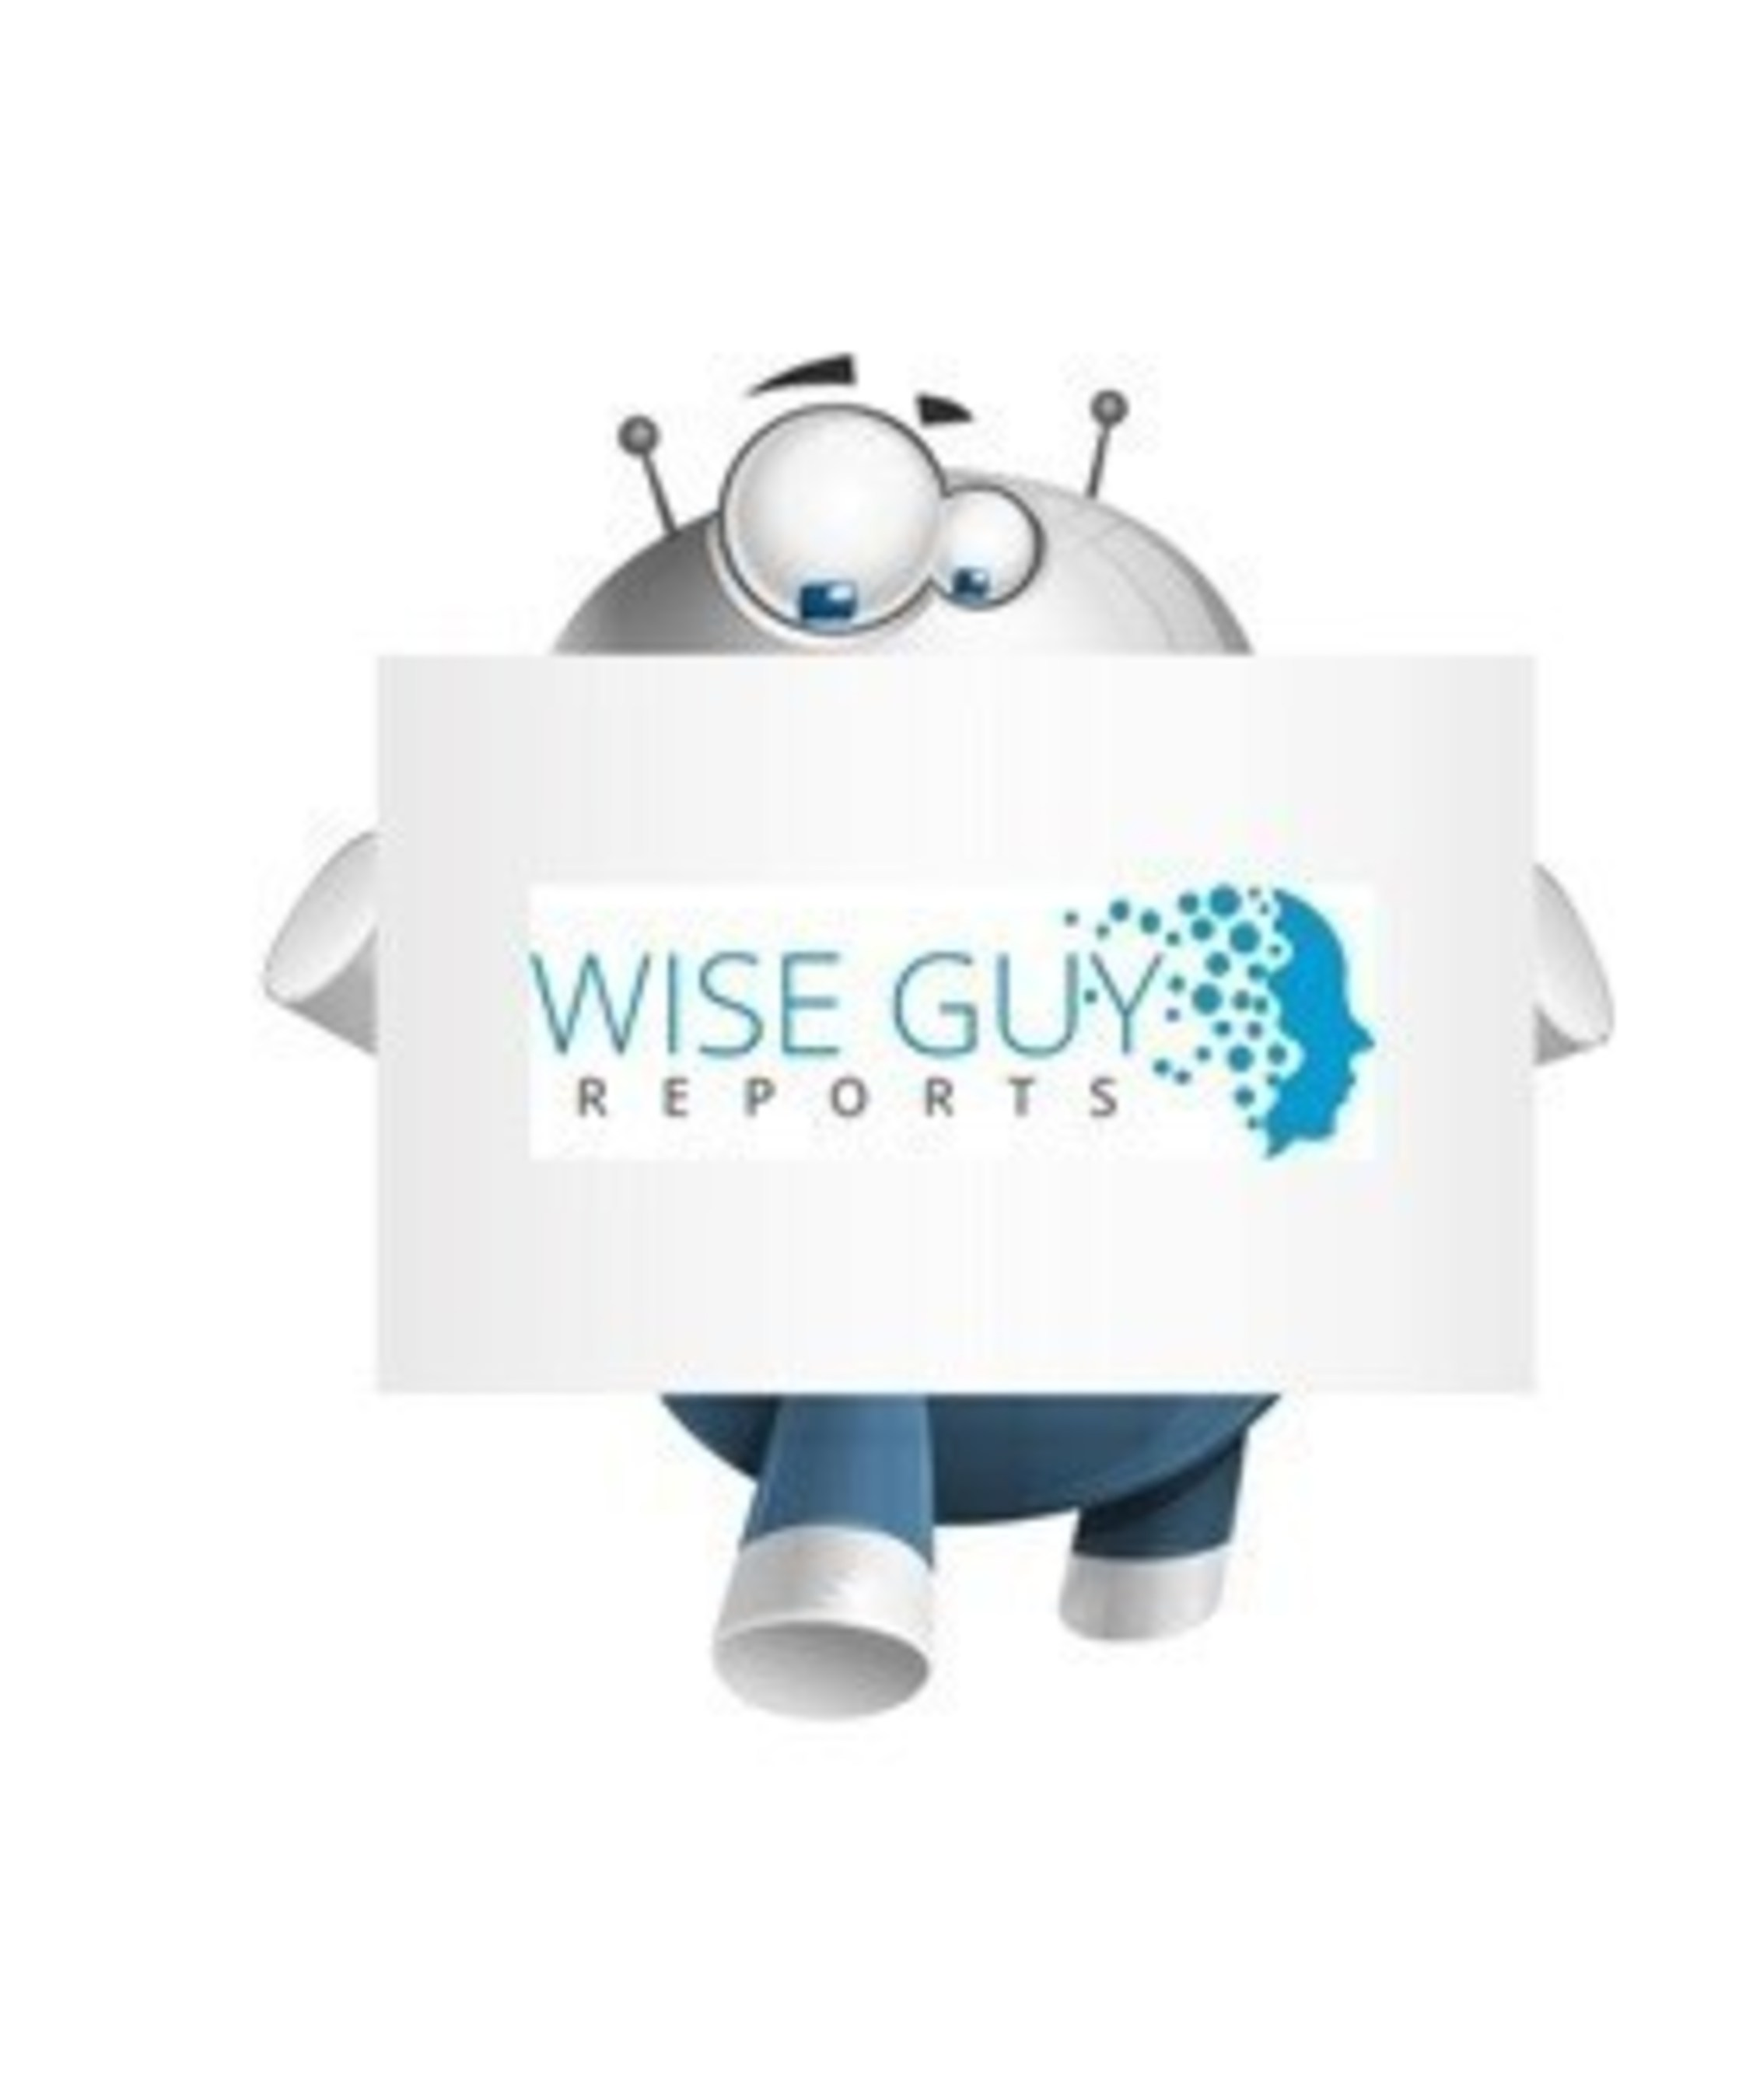 M2M, IoT and Wearable Technology Ecosystem Industry 2015 to 2030 - Analysis of 724 Companies New Report Available at WiseGuyReports.com